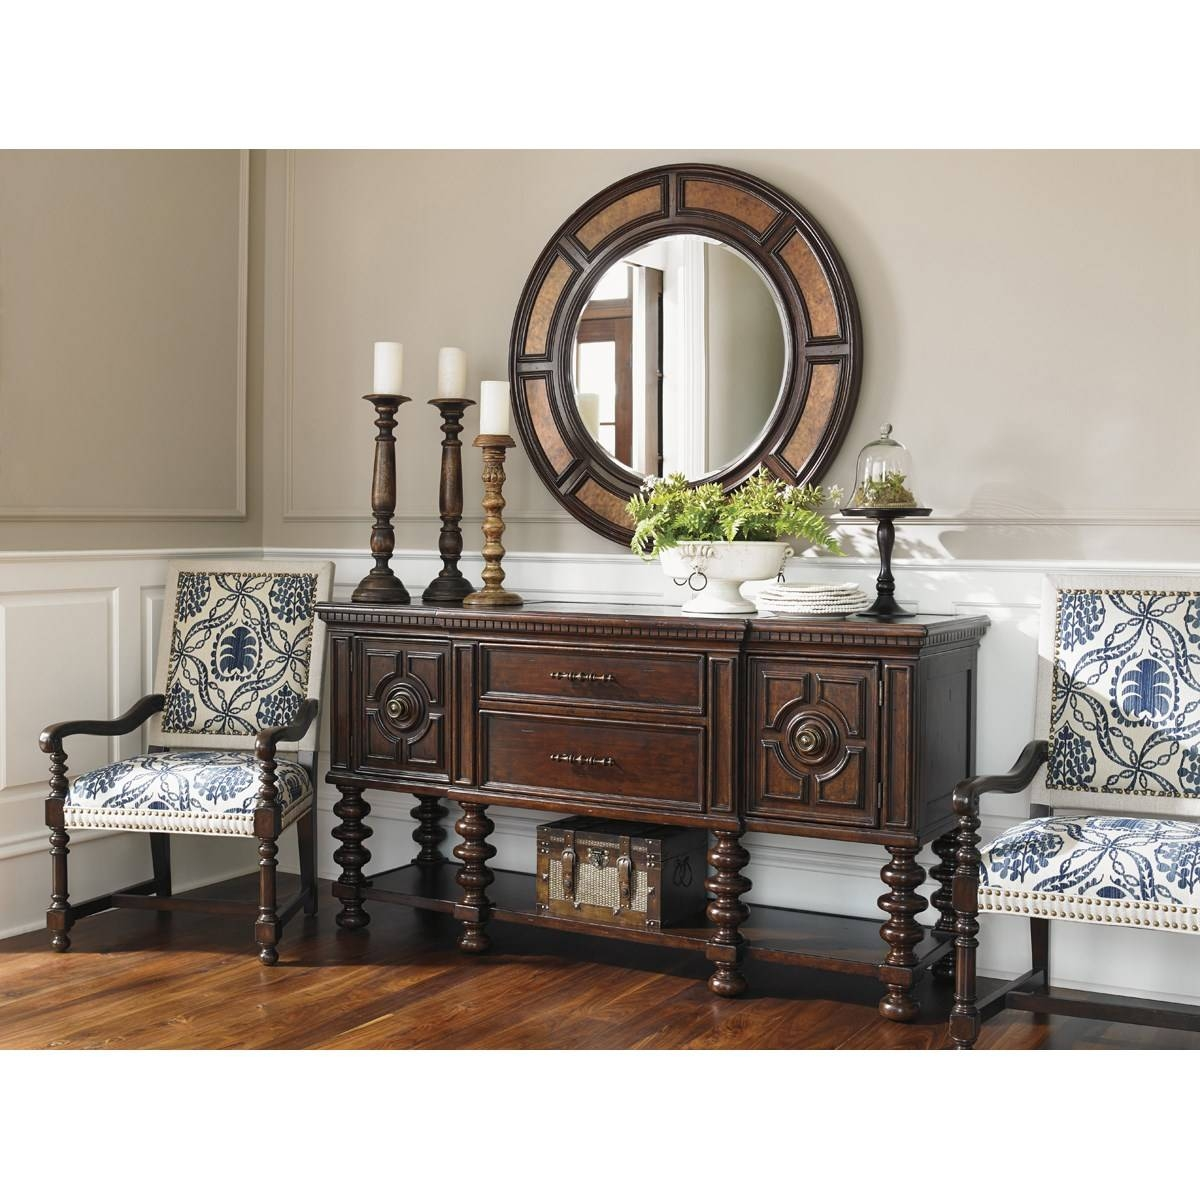 Tommy Bahama 552-869 Kilimanjaro Cipriana Sideboard In Dark Brown with regard to Dark Brown Sideboards (Image 29 of 30)